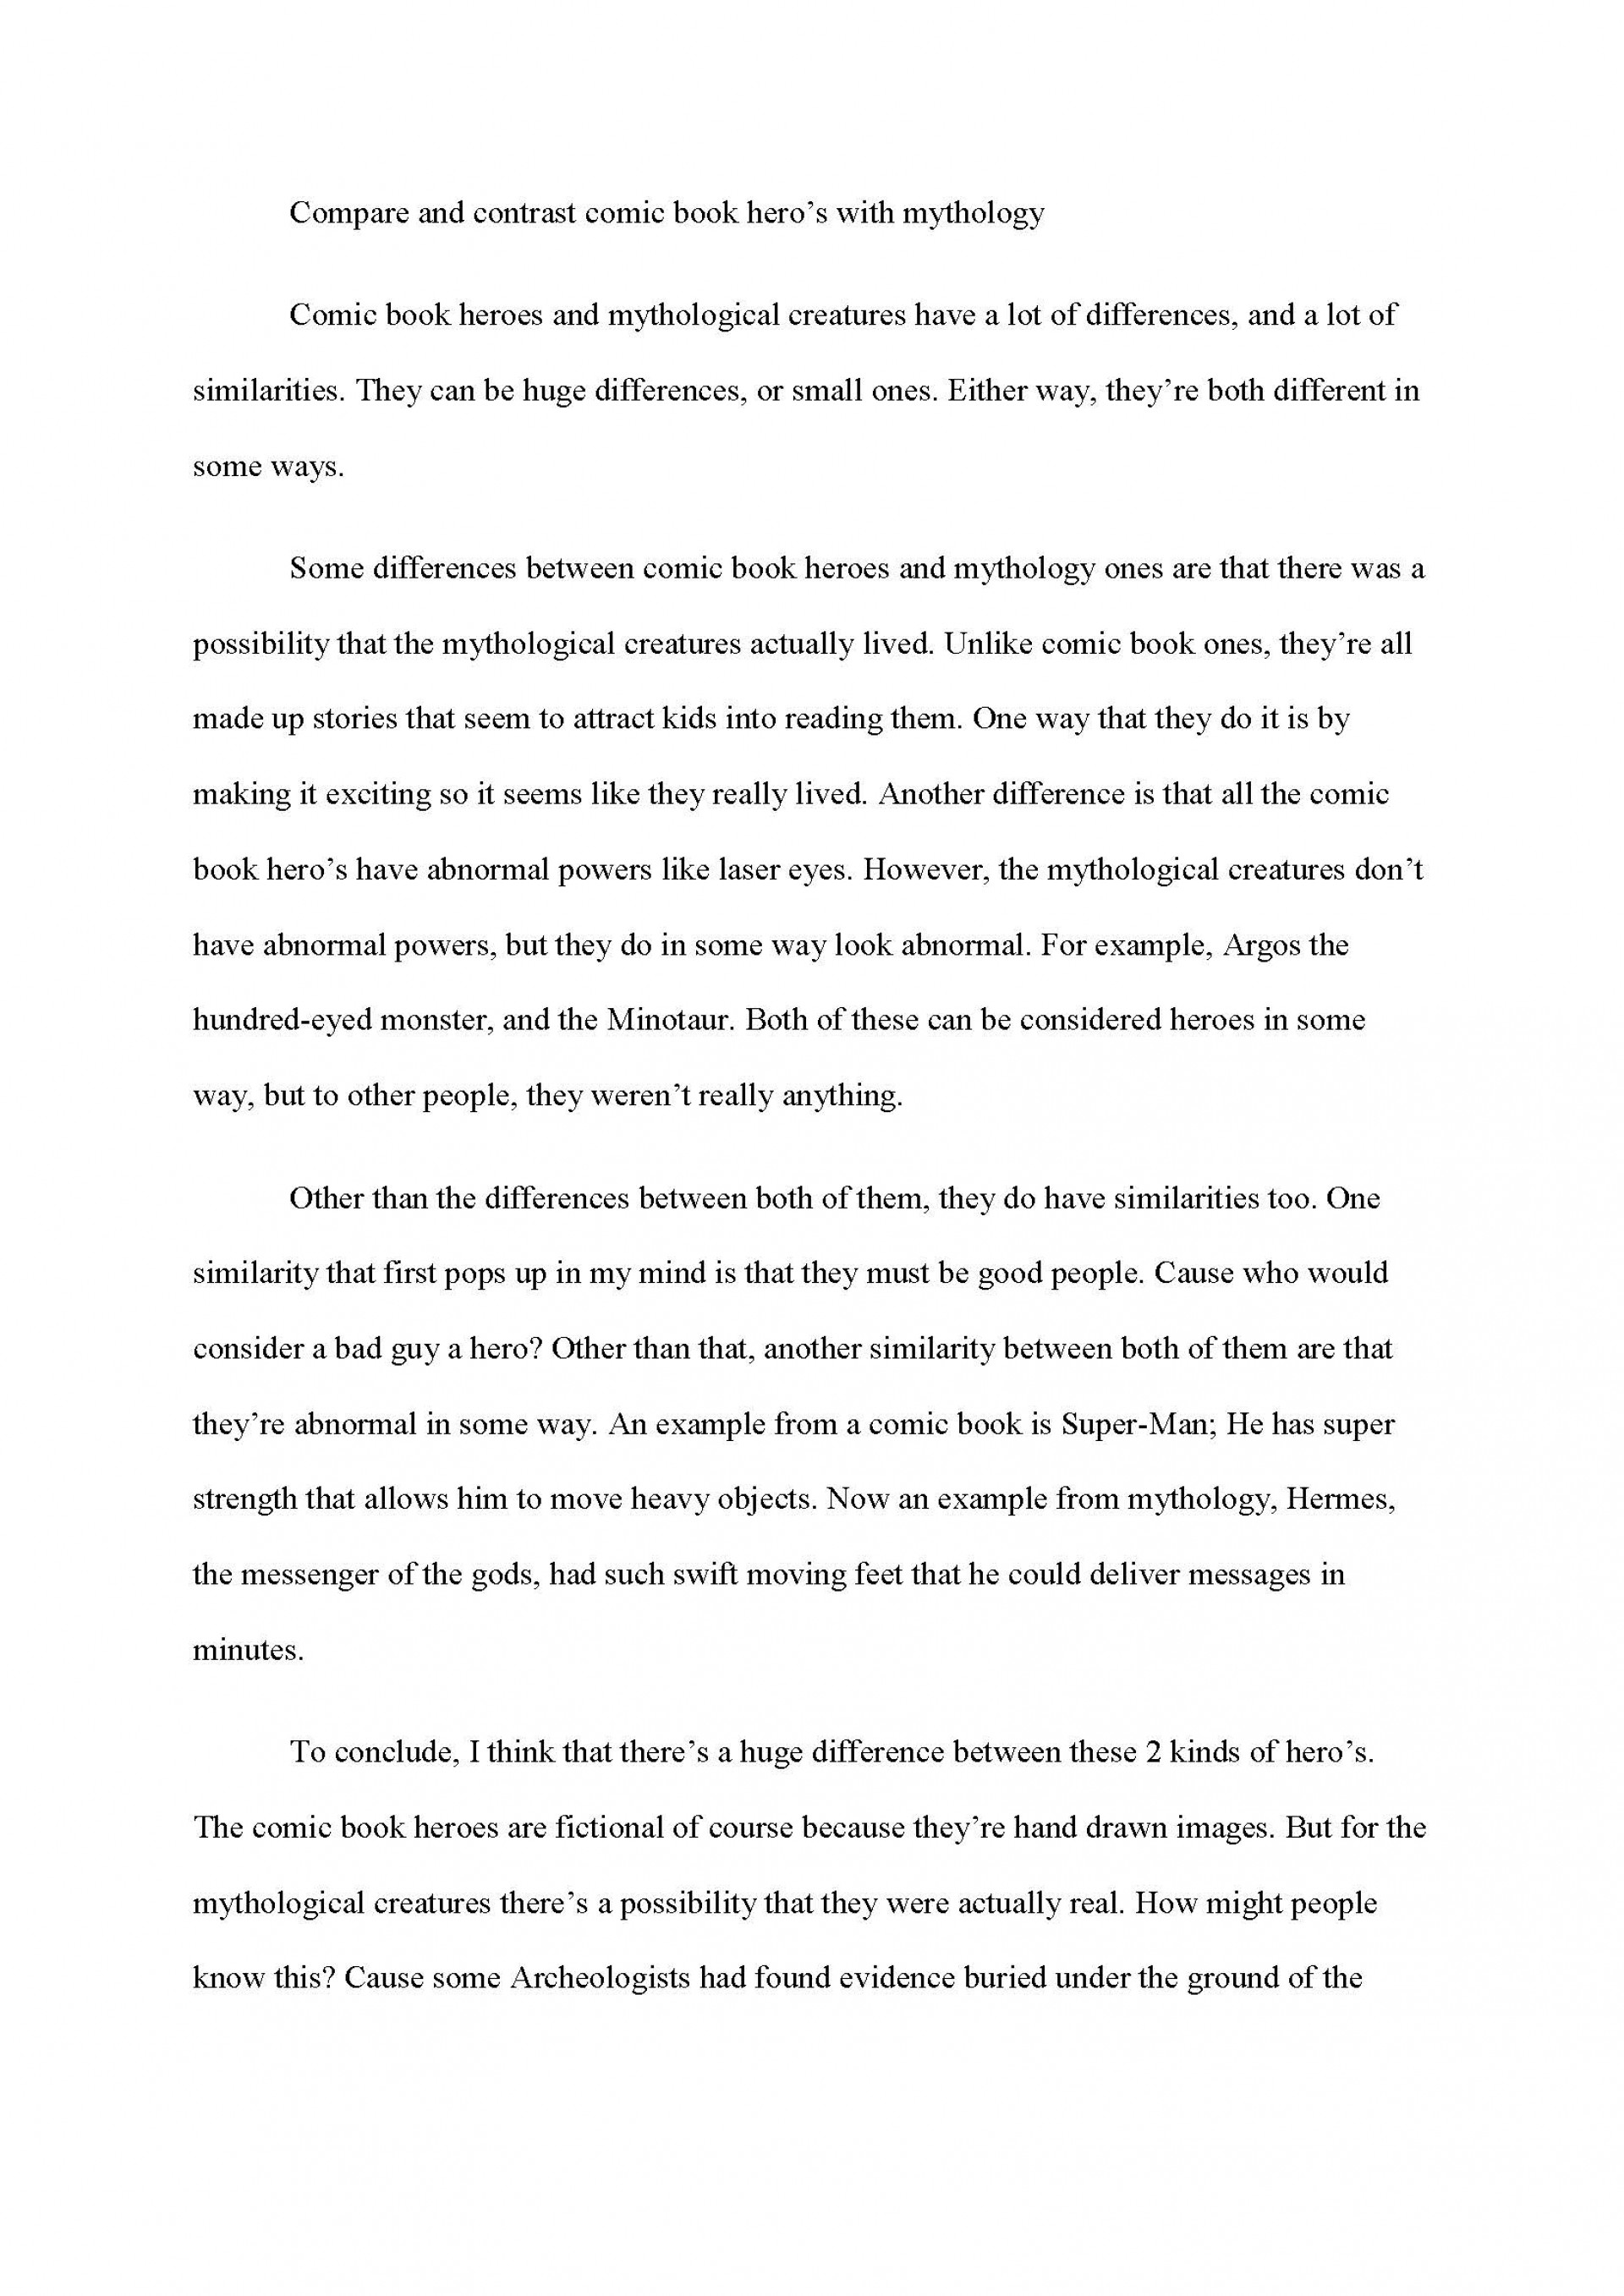 002 Essay Example Comparison And Contrast Examples Compare Frightening Free Pdf College 1920